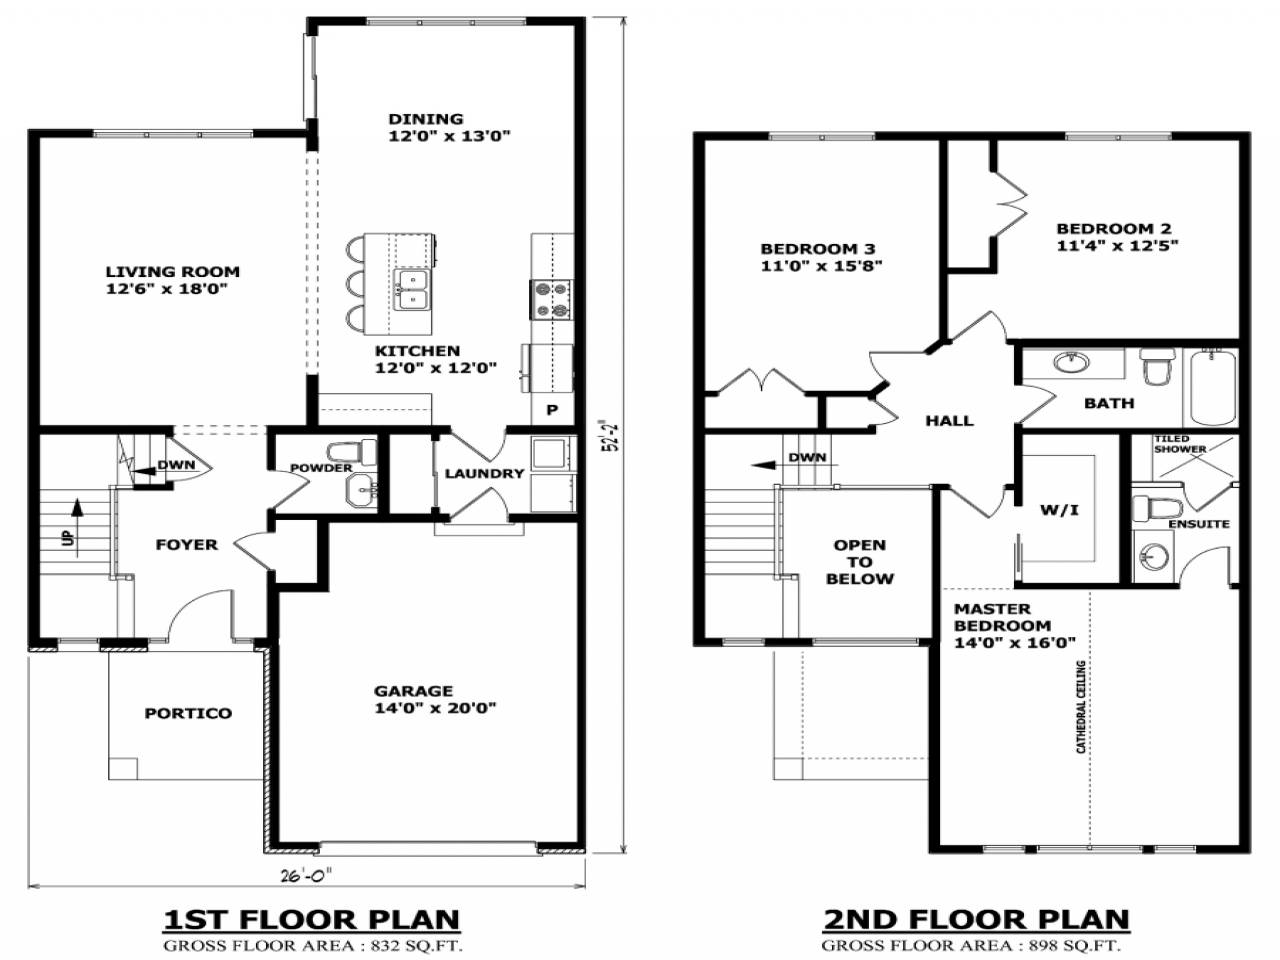 Check Out 17 Simple 2 Story Farmhouse Plans Ideas House Plans,Different Ways To Hang Curtains Pictures